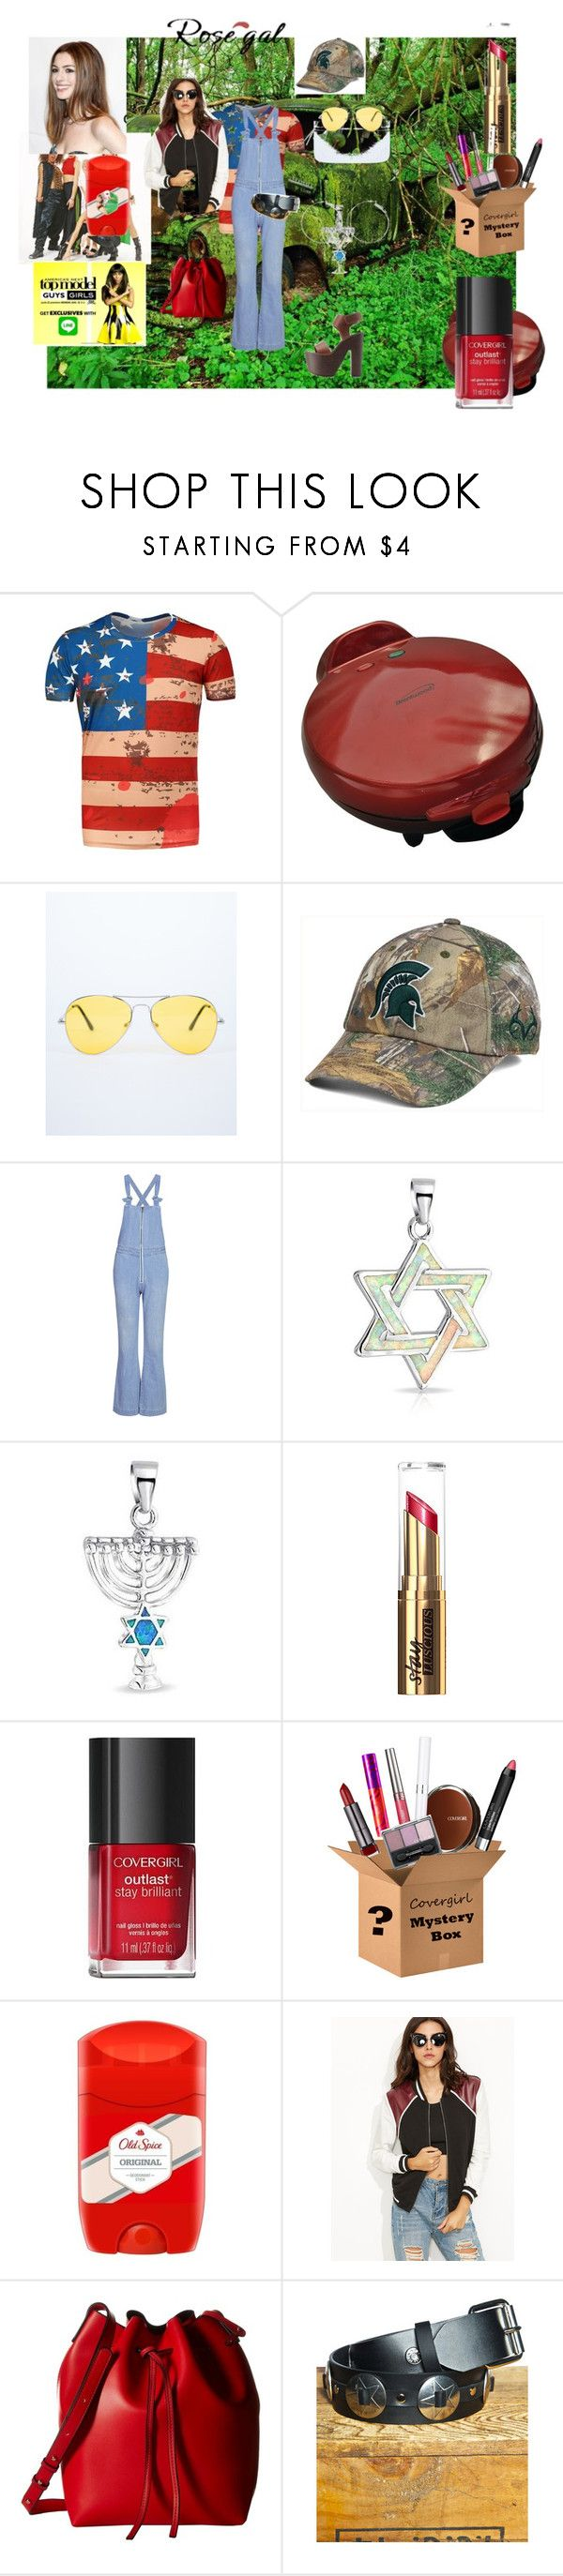 """Win $20 cash from Rosegal.com contest"" by naomig-dix ❤ liked on Polyvore featuring Top of the World, Bling Jewelry, COVERGIRL, Old Spice, Gabriella Rocha, Club Exx, men's fashion and menswear"